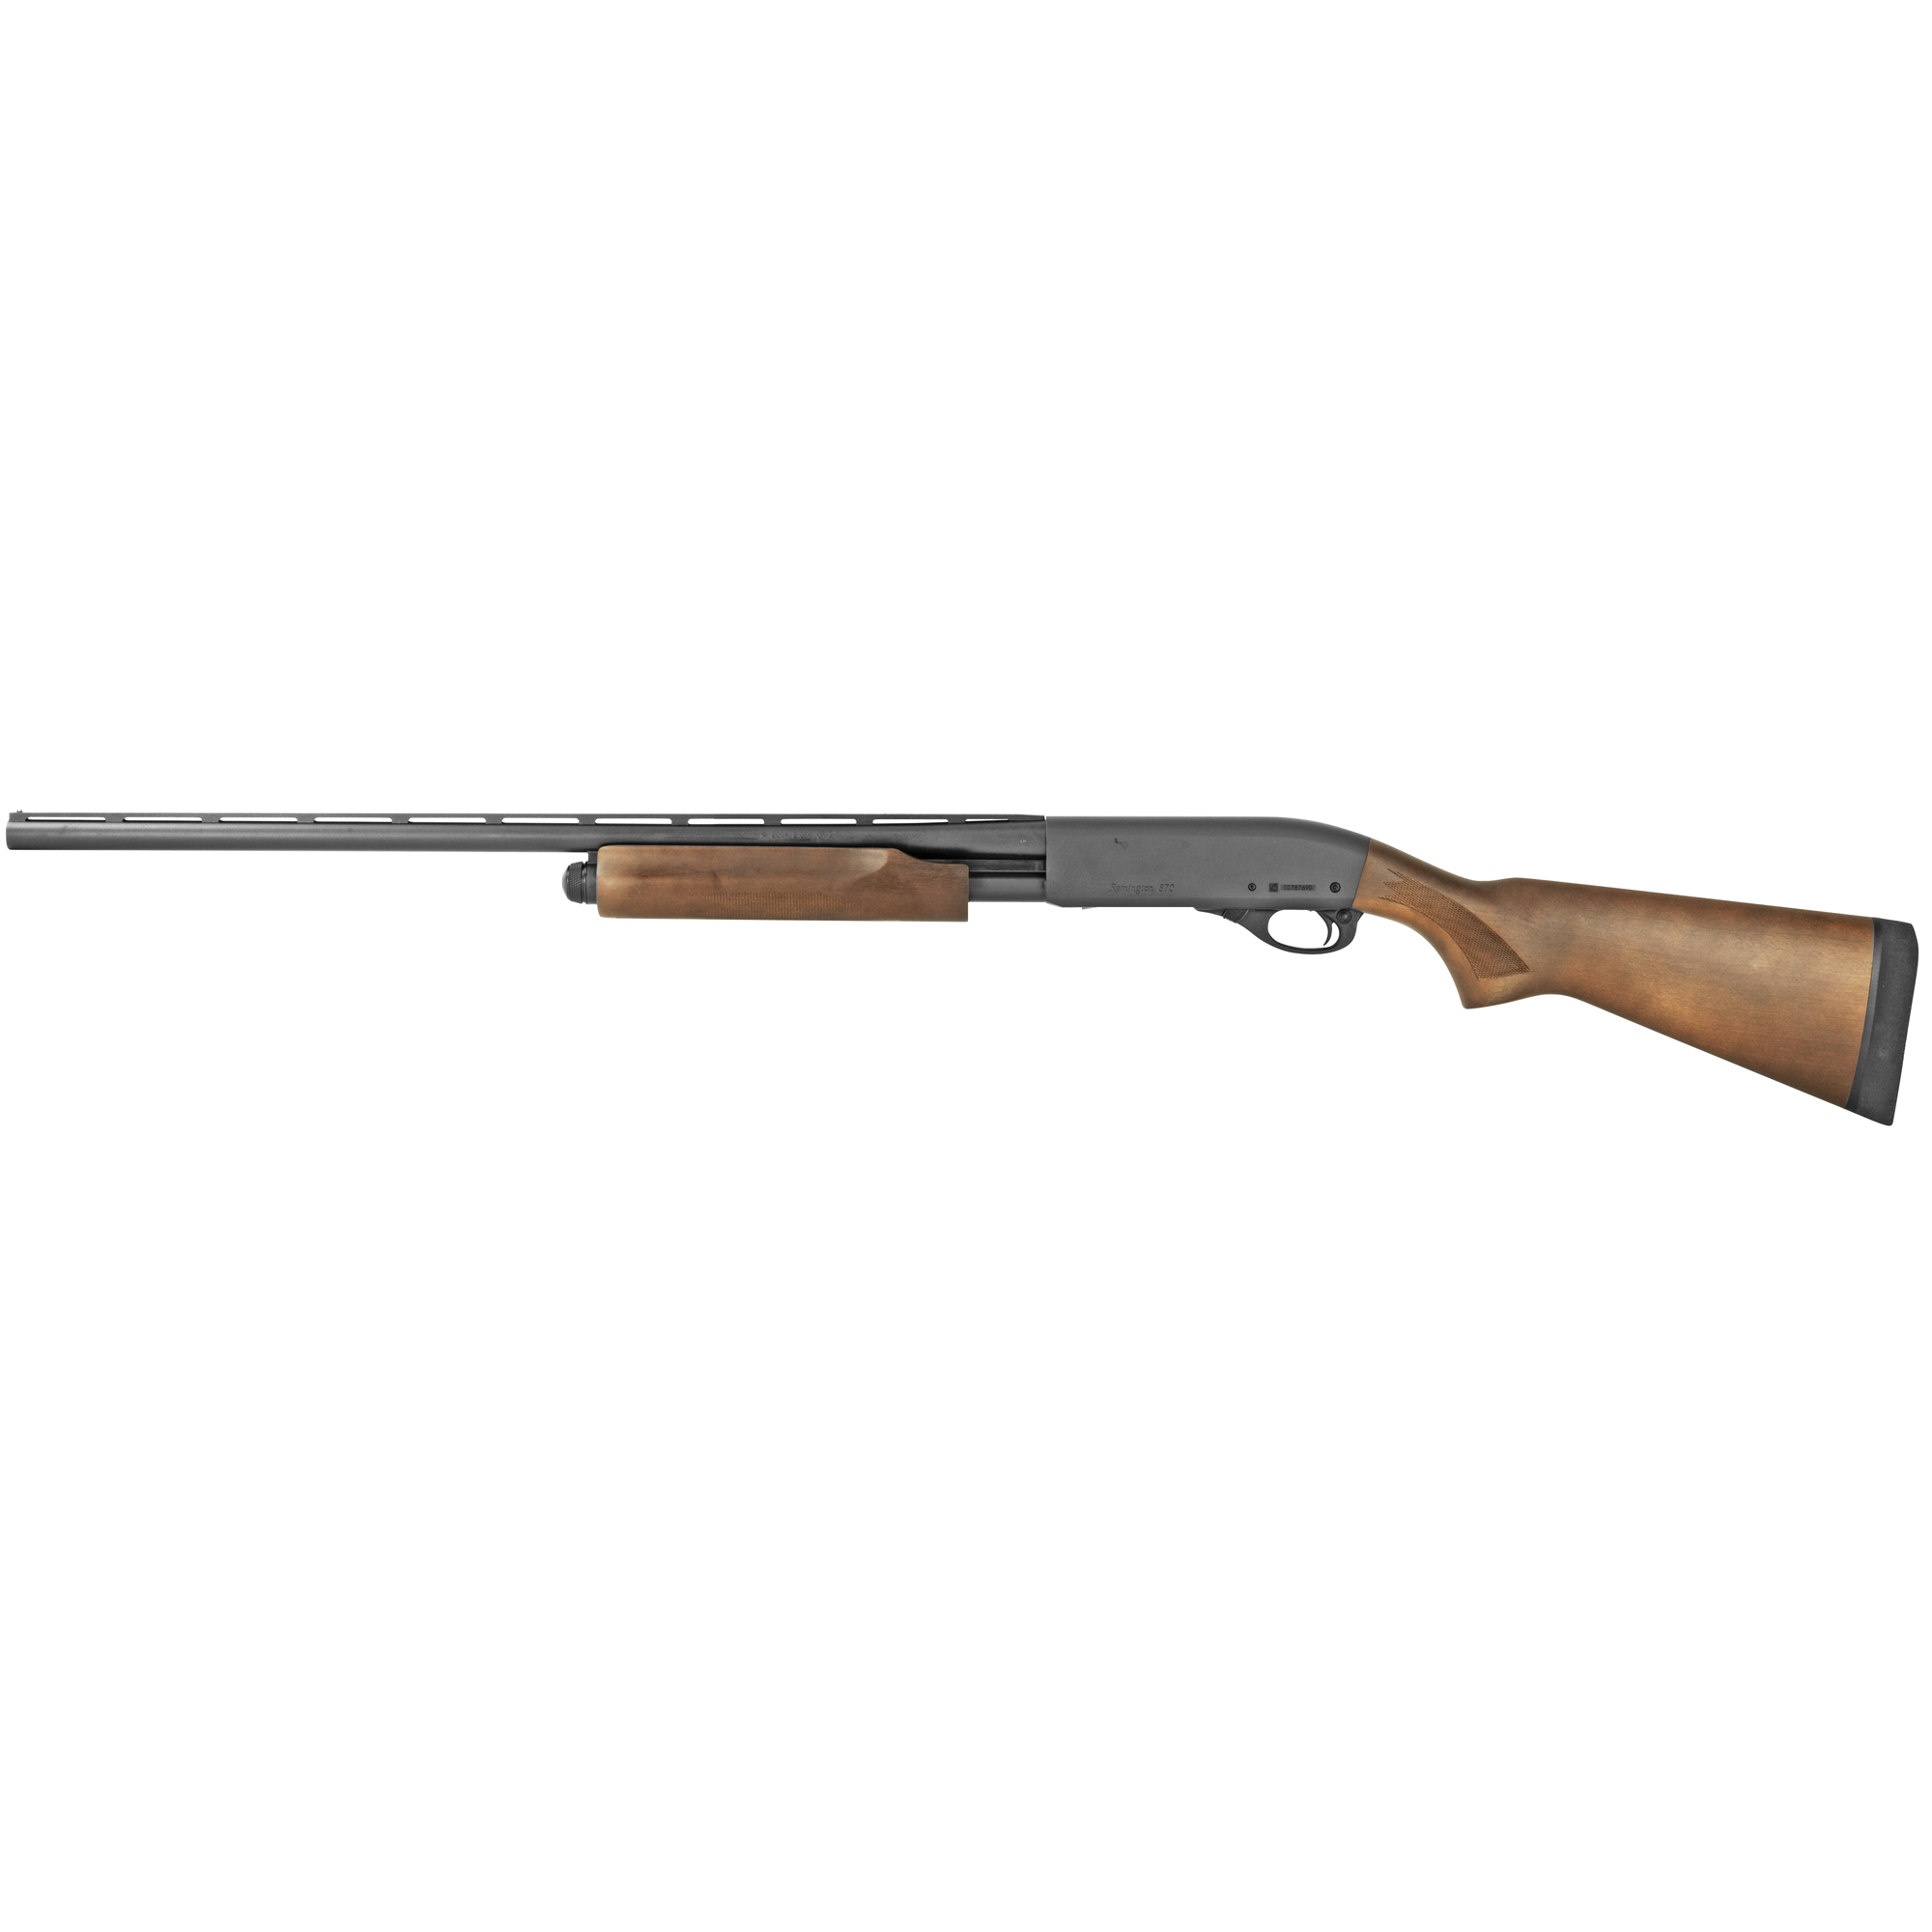 """From the fields and waterways of America"""" to the frontlines and law enforcement"""" Remington shotgun innovation continues to lead the way for the American way of life."""